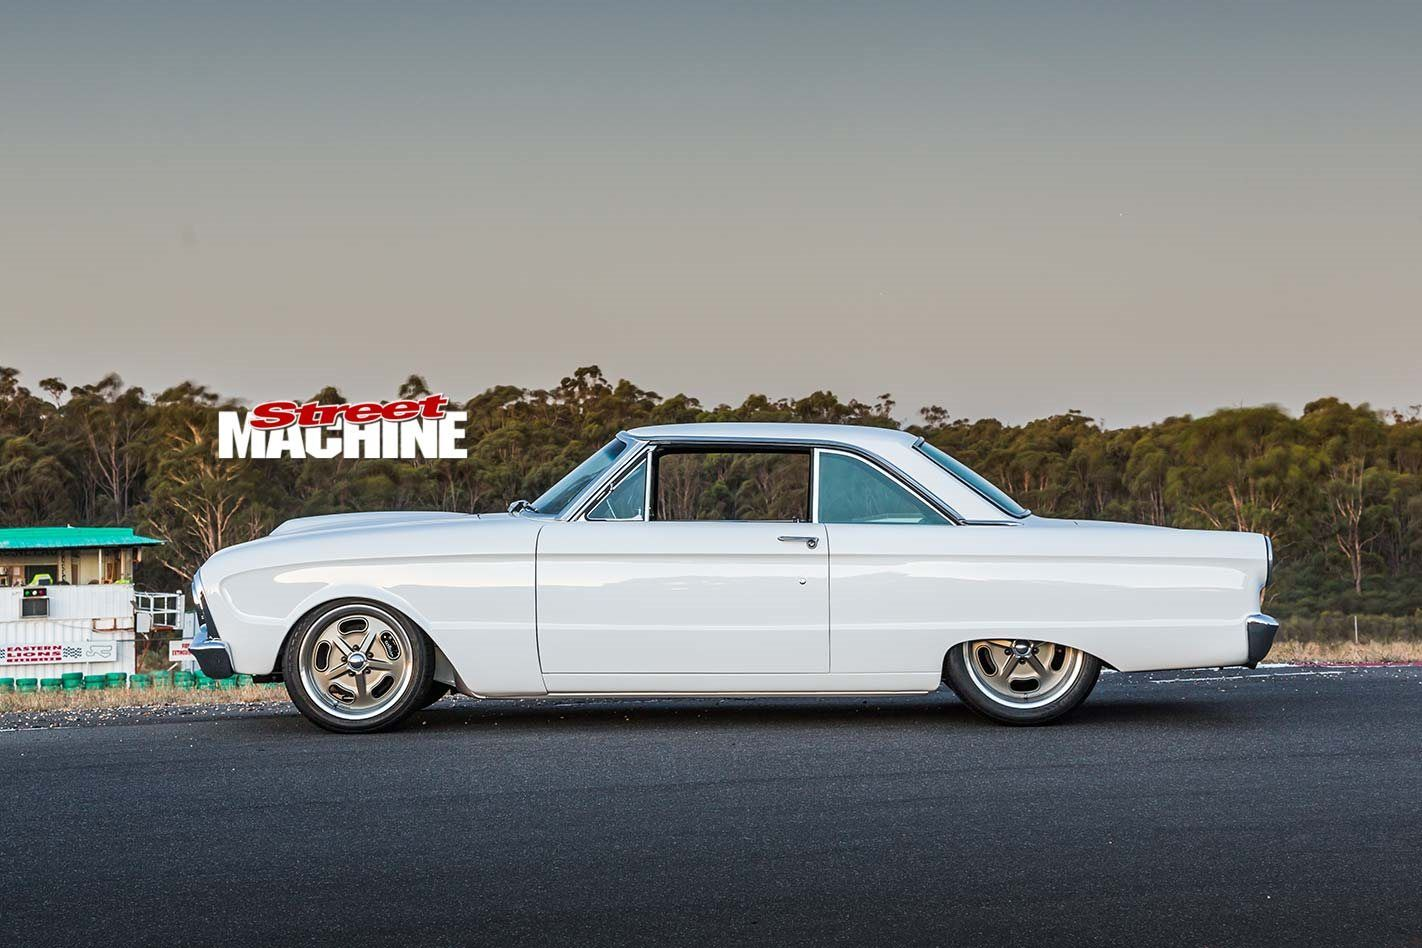 600hp 1964 Ford Xm Futura Coupe With 363ci Dart Windsor 1964 Ford Ford Classic Cars Ford Falcon